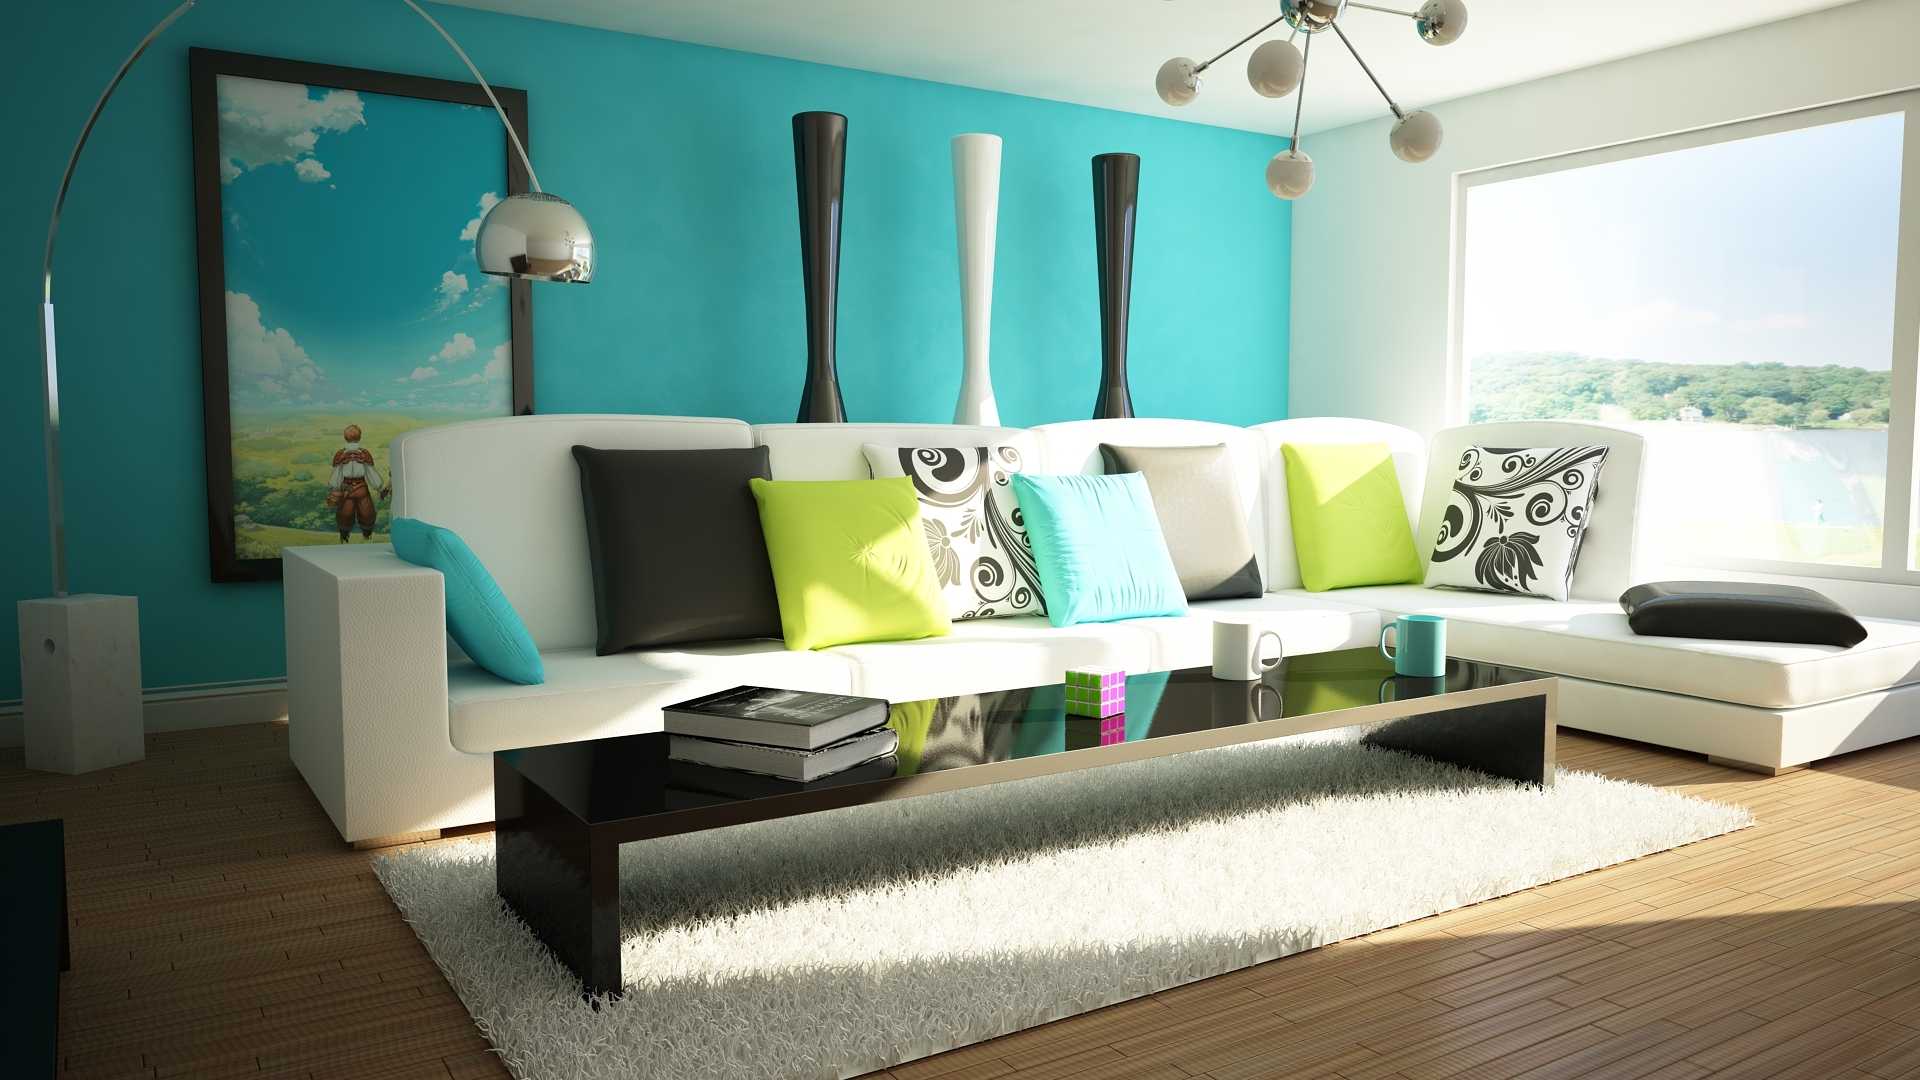 Great Interior Design Color Ideas for Living Rooms 1920 x 1080 · 1188 kB · jpeg